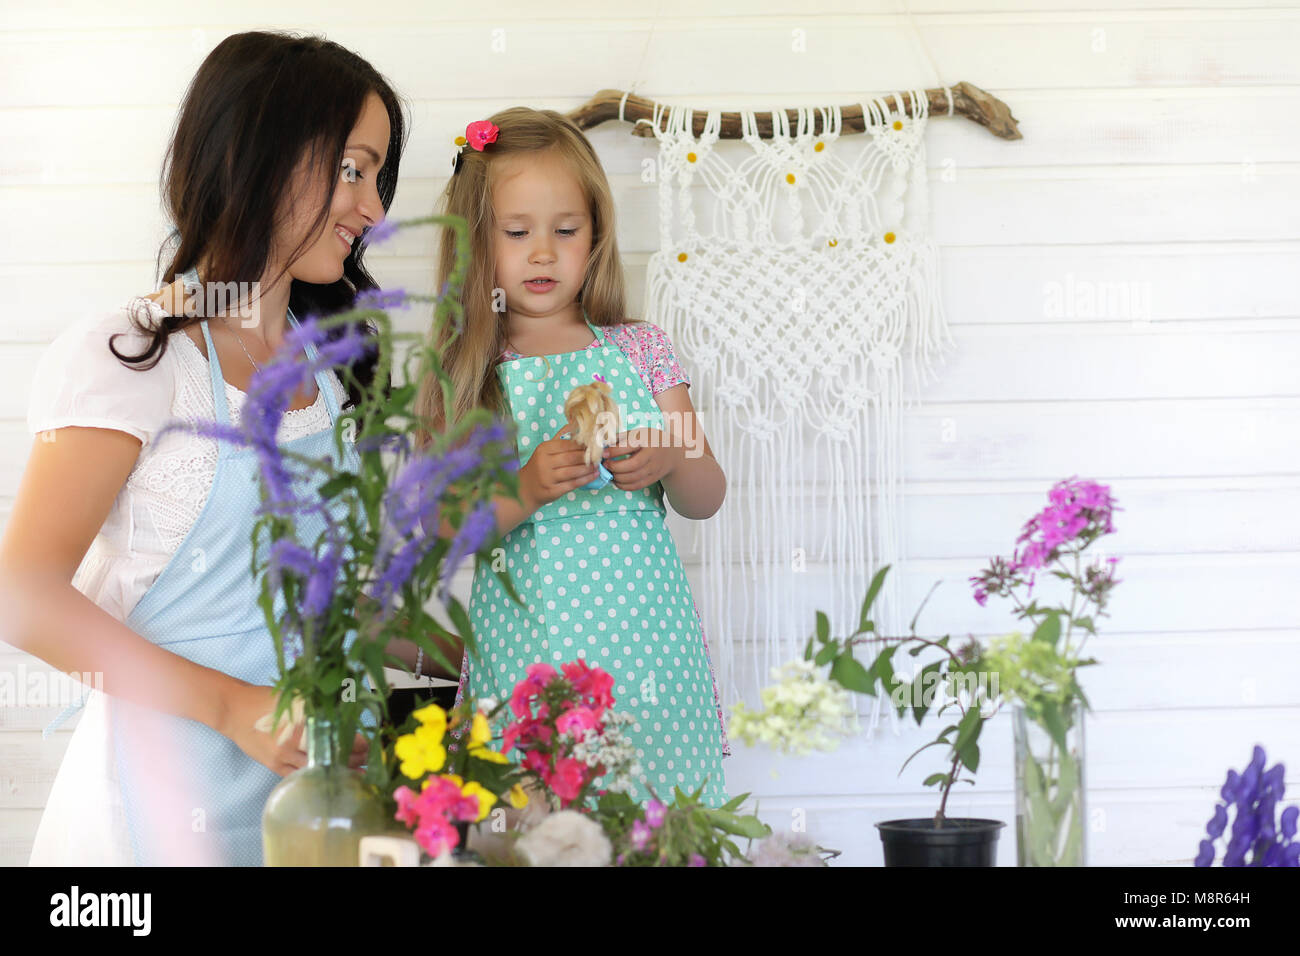 Florist girl who creates a bouquet of flowers standing on a wooden table - Stock Image